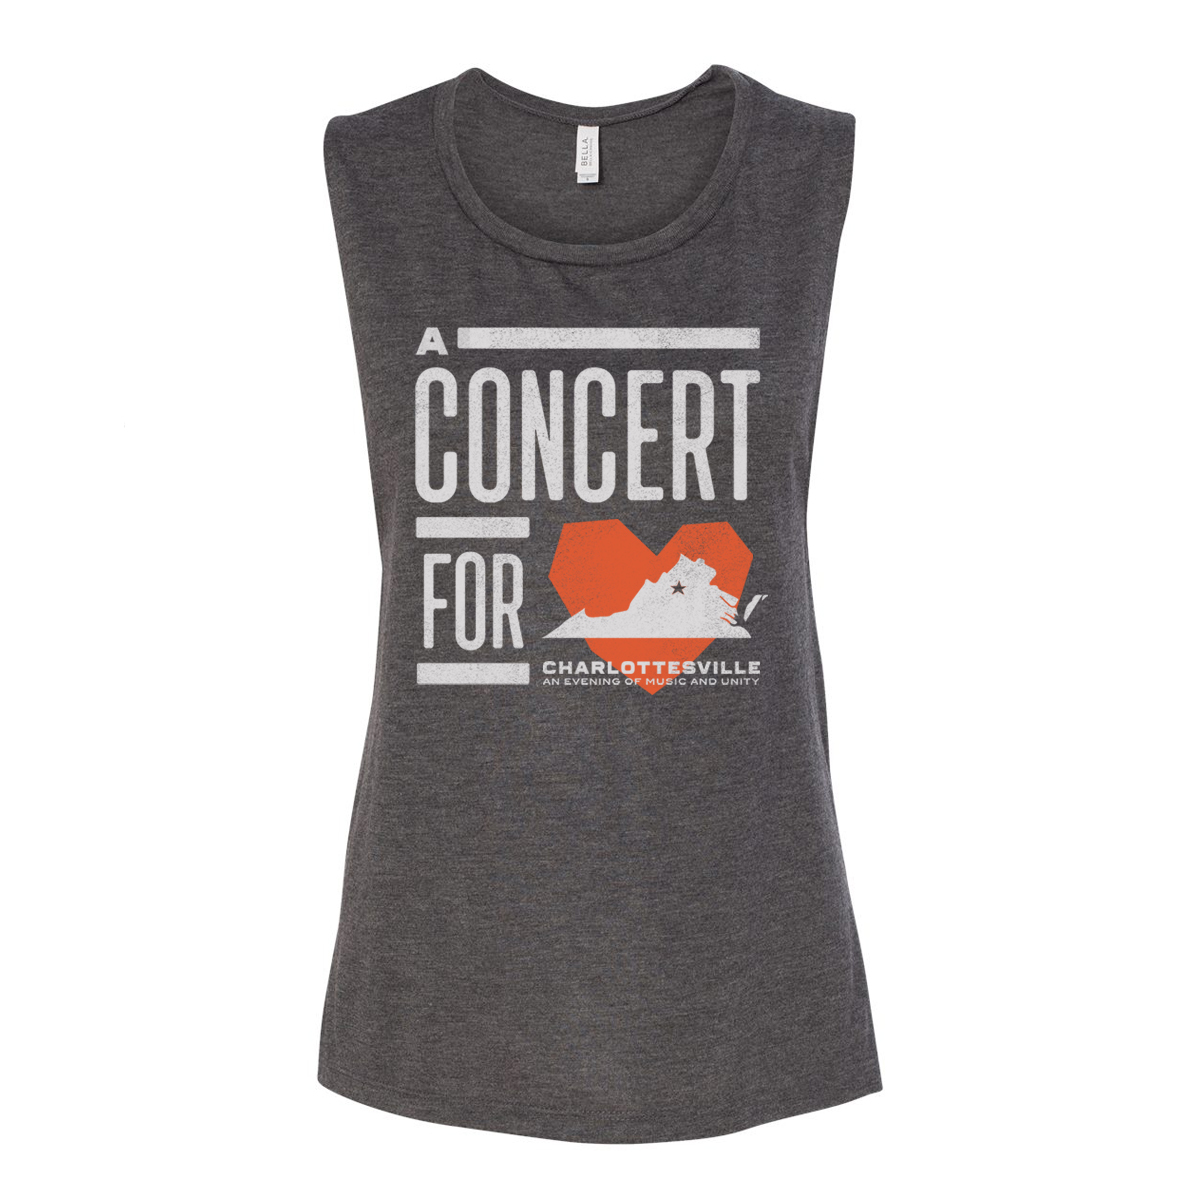 Women's Concert for Charlottesville Muscle Tank